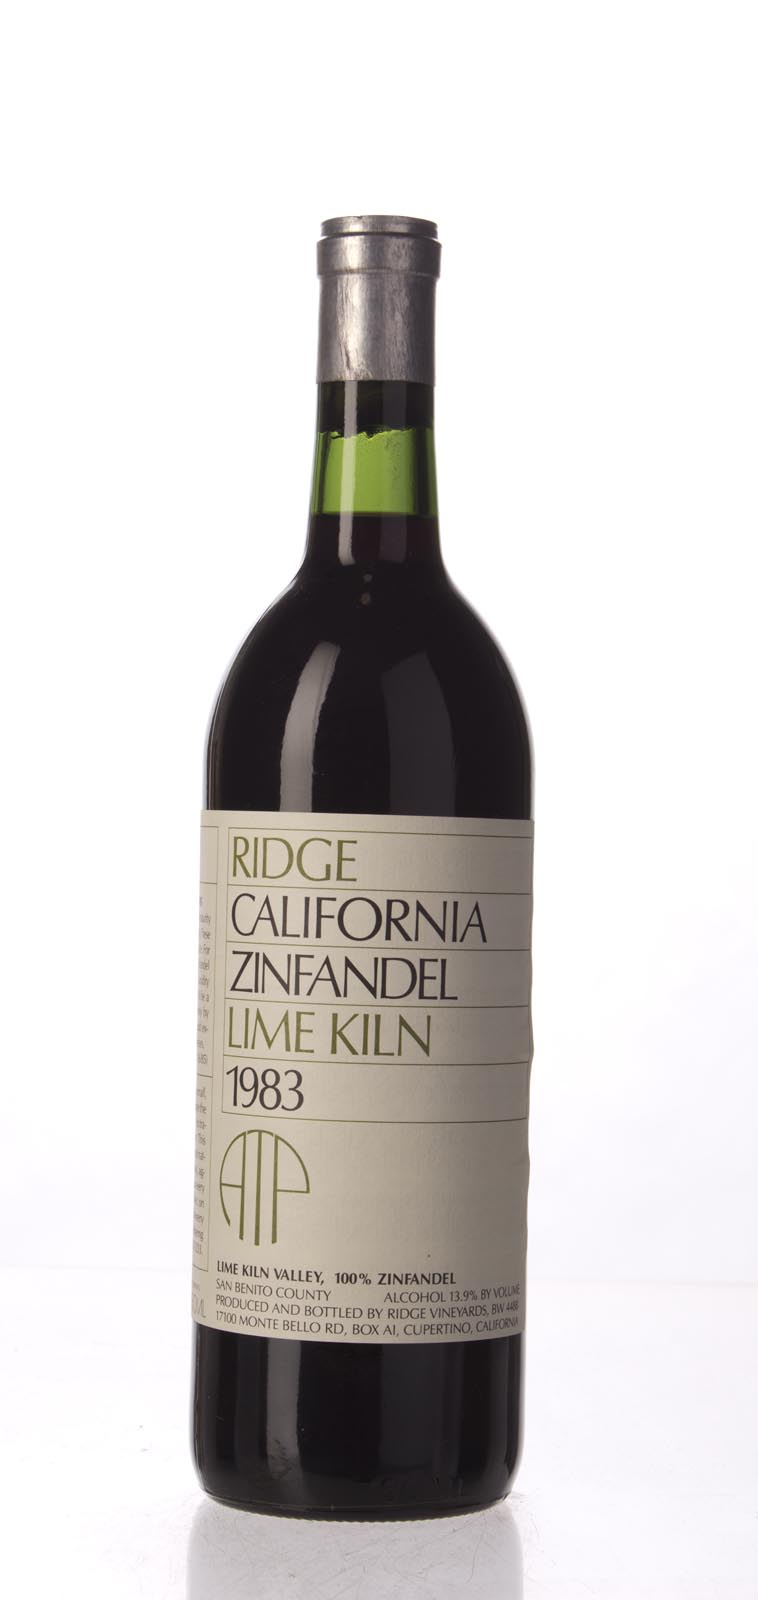 Ridge Zinfandel Lime Kiln 1983, 750mL () from The BPW - Merchants of rare and fine wines.